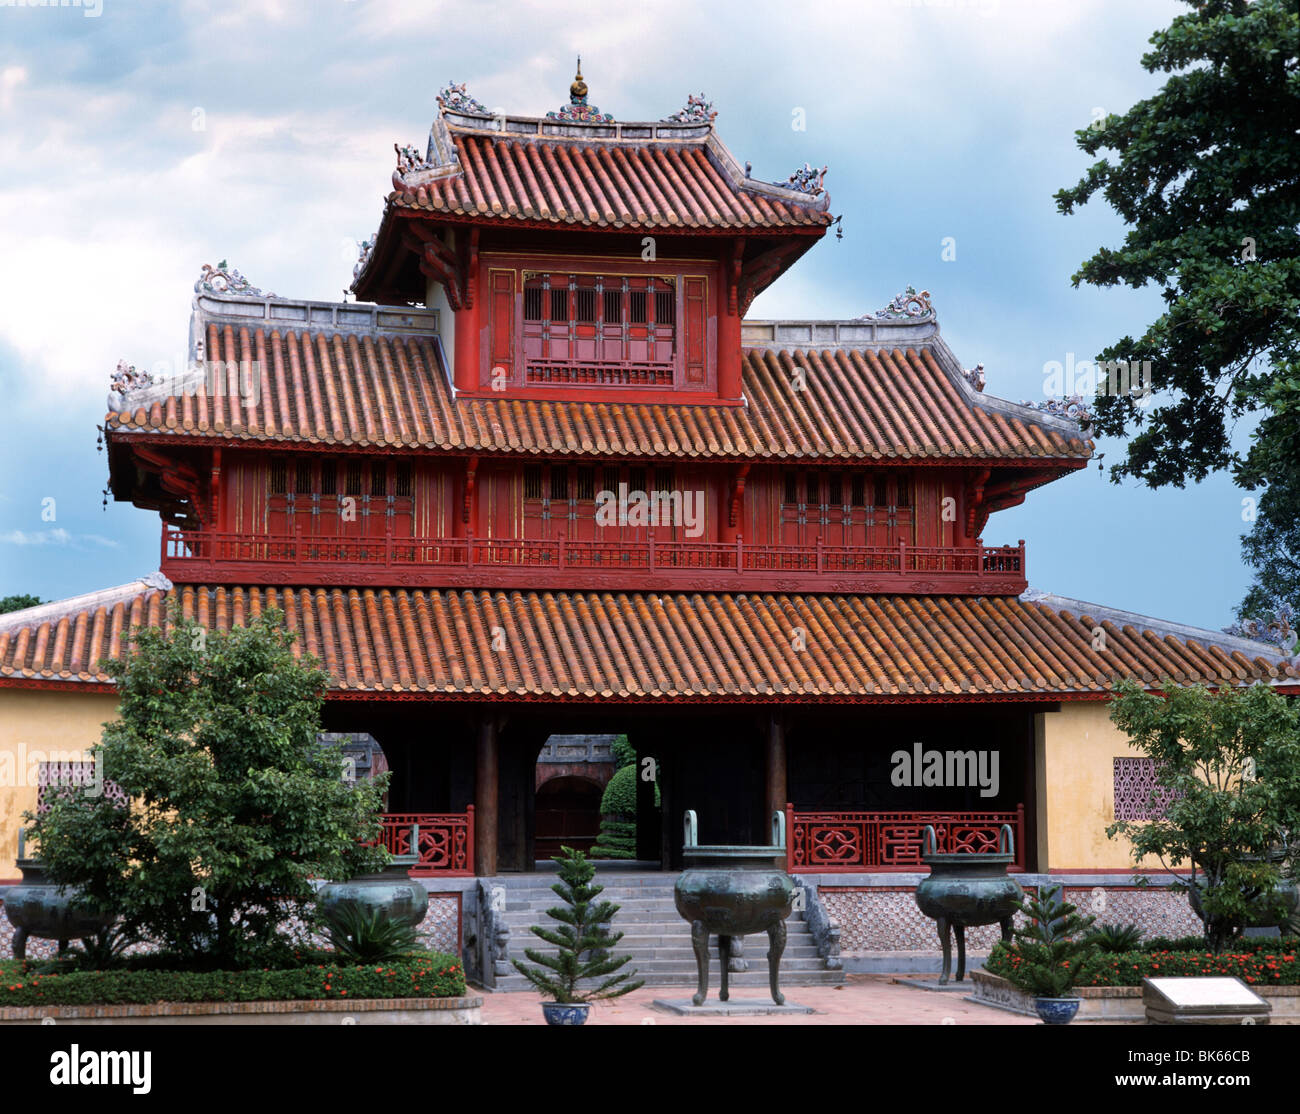 Hien Lam, the Pavilion of the Glorious Coming, The Citadel at Hue, Vietnam, Indochina, Southeast Asia, Asia - Stock Image